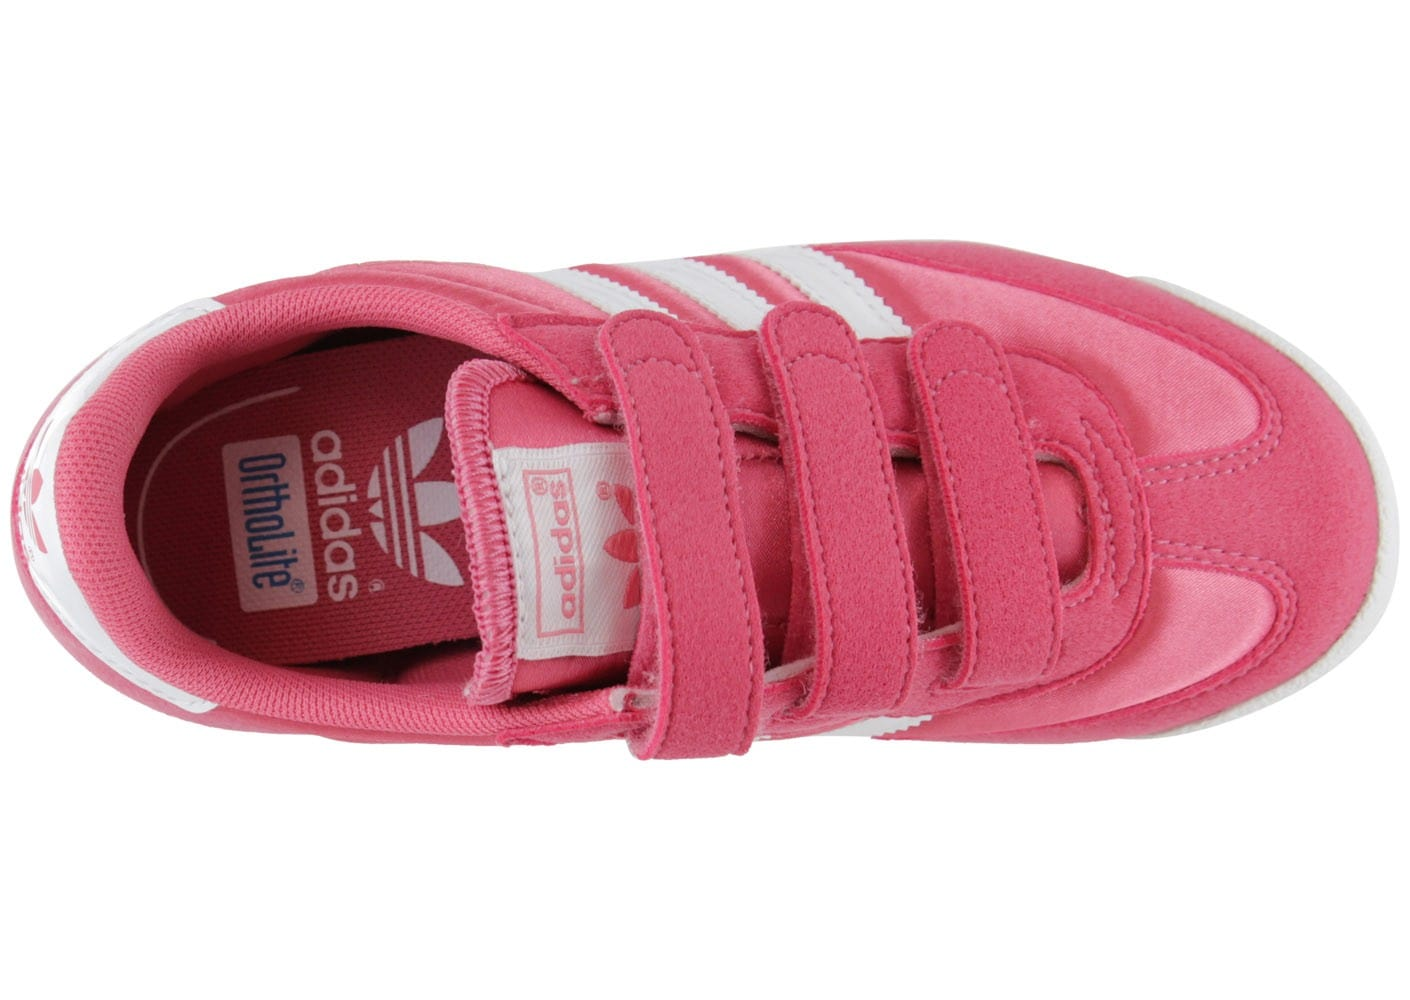 outlet store 4a7db f4c4f ... chaussures adidas enf dragon rose blc t313 vue dessus